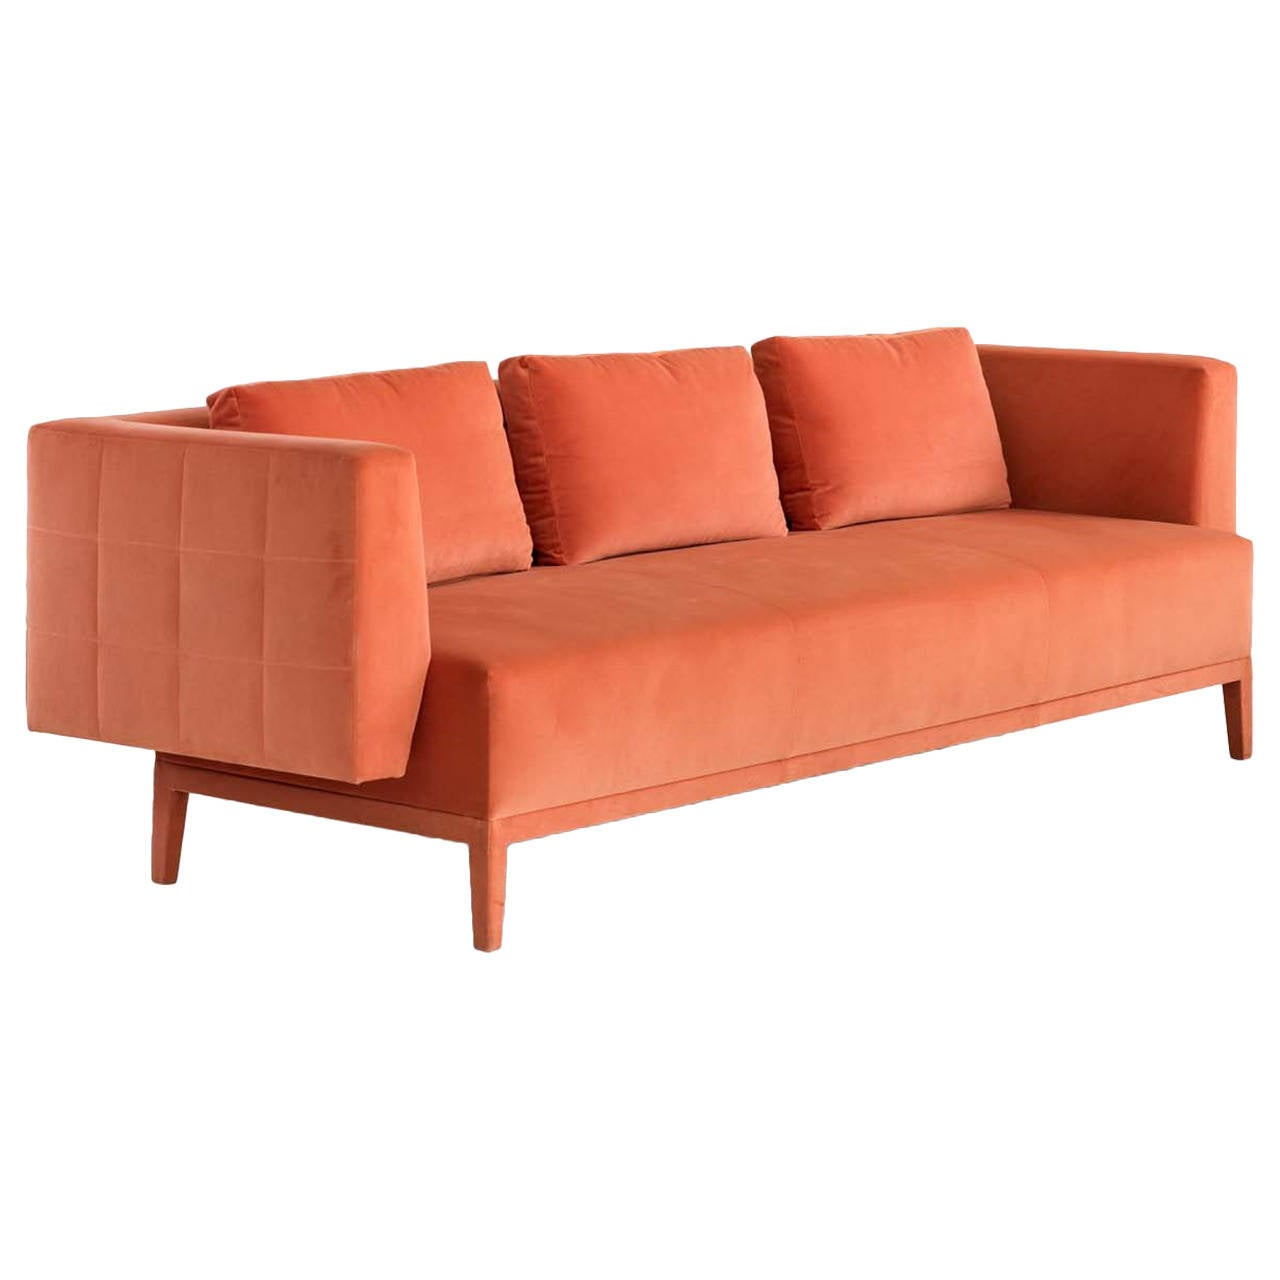 Codeartmediacom Orange Sofa For Sale Couches Sofas For  : 2106132l from codeartmedia.com size 1280 x 1280 jpeg 52kB